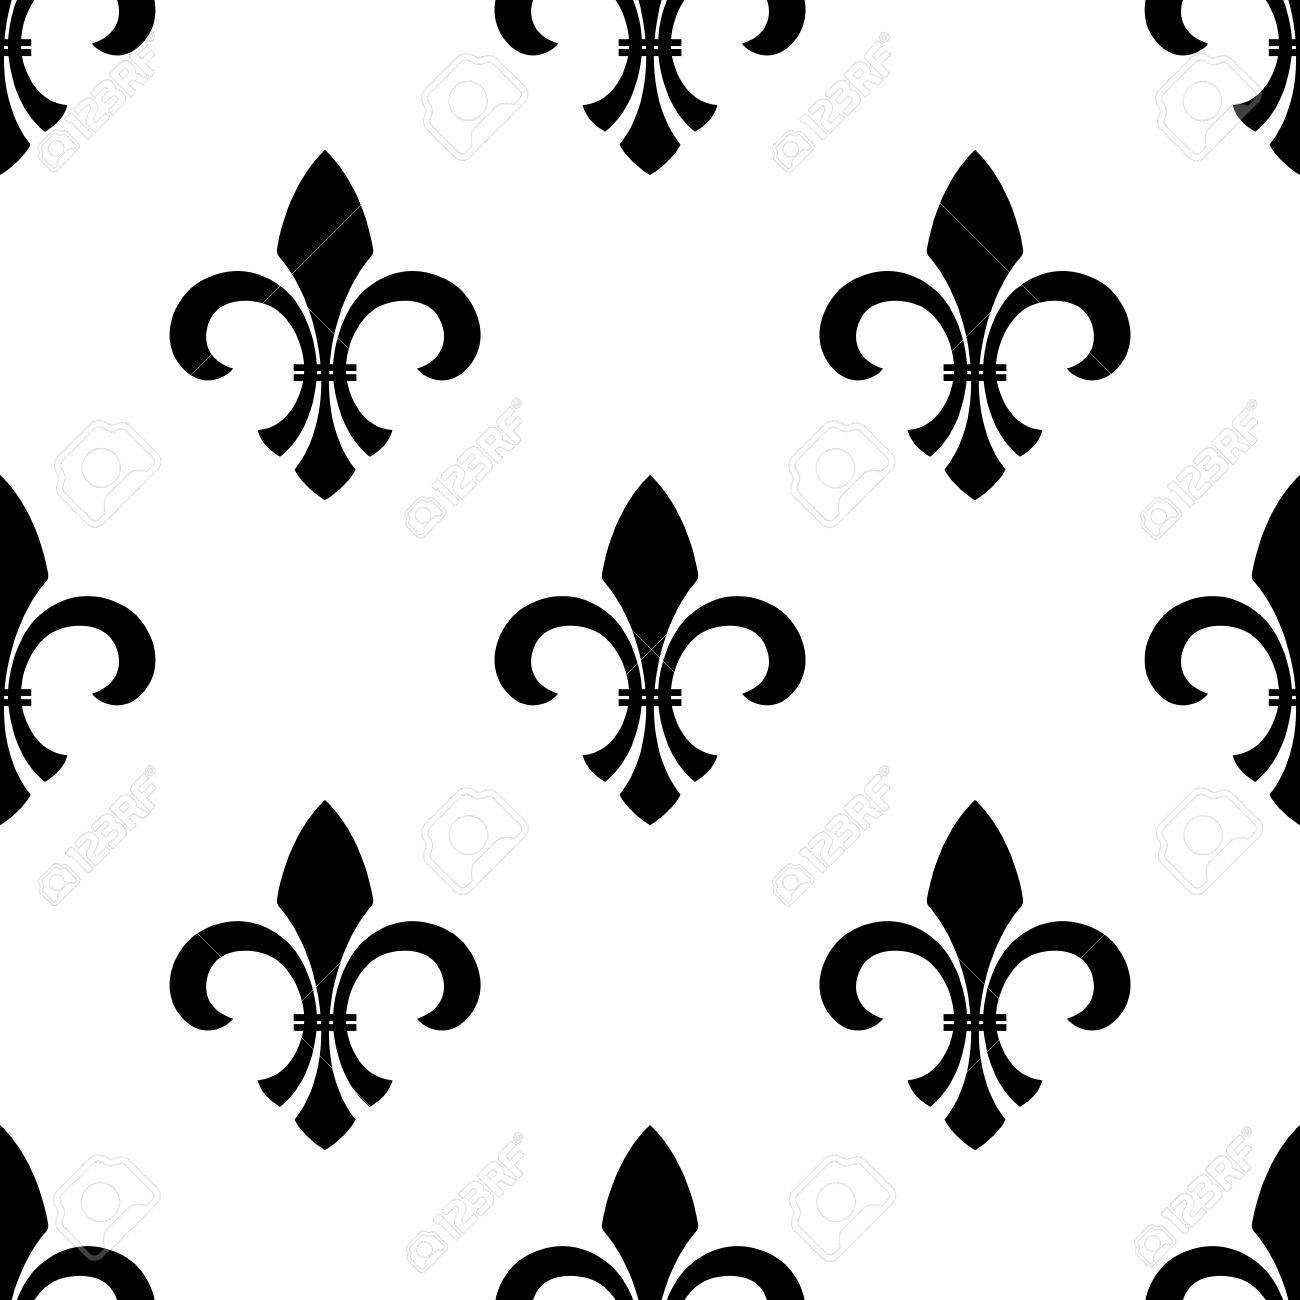 seamless of a fleur de lys motif in a repeating pattern in black